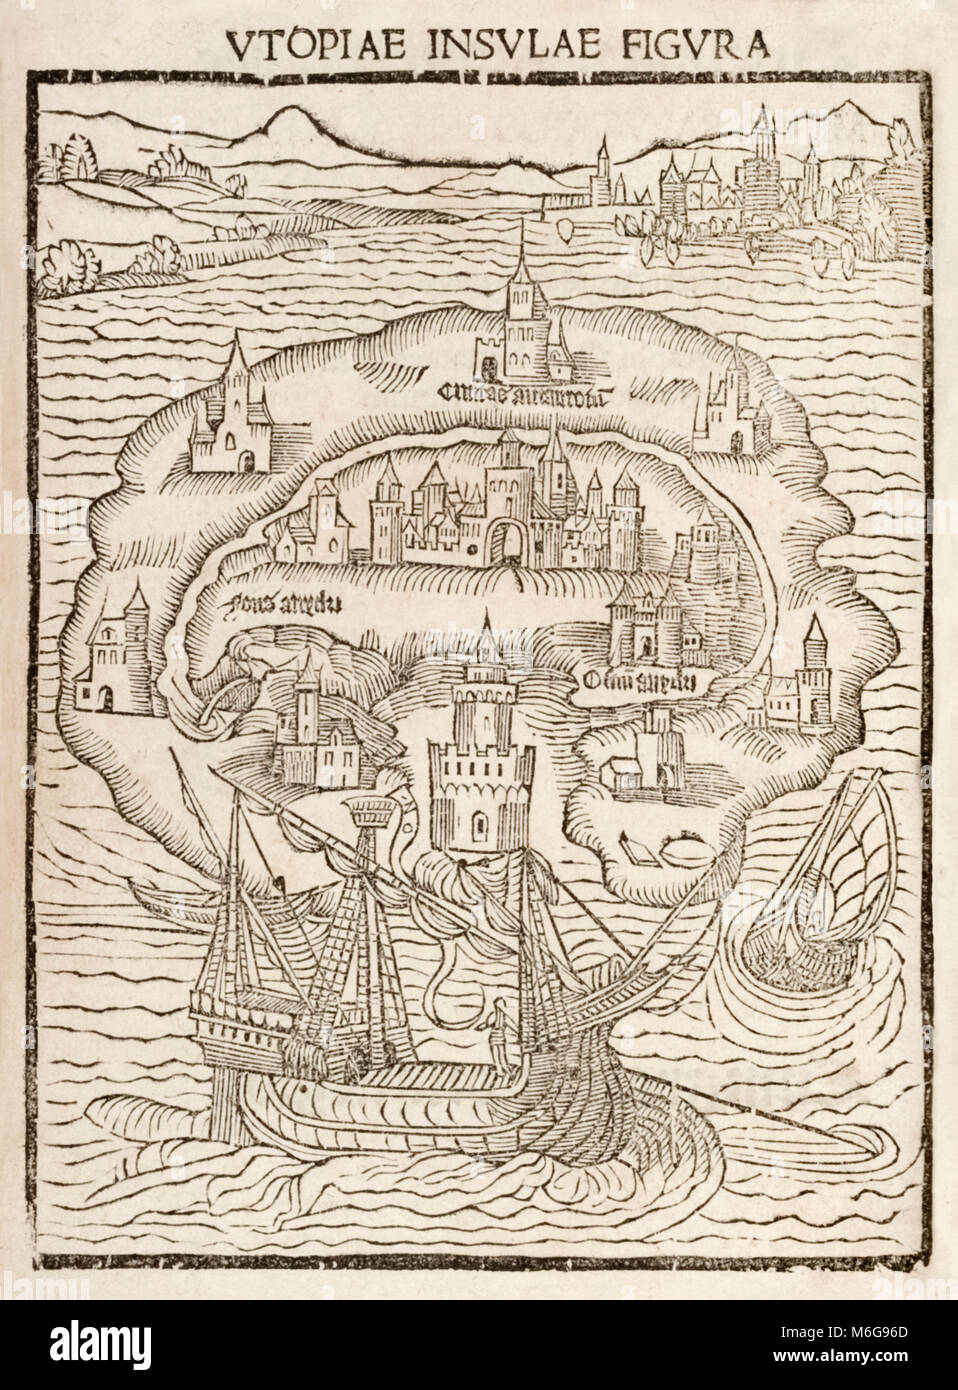 'Utopiae Insulae Figura' (Map of the New Island of Utopia) from the 1516 first edition of 'Utopia' by Sir Thomas - Stock Image